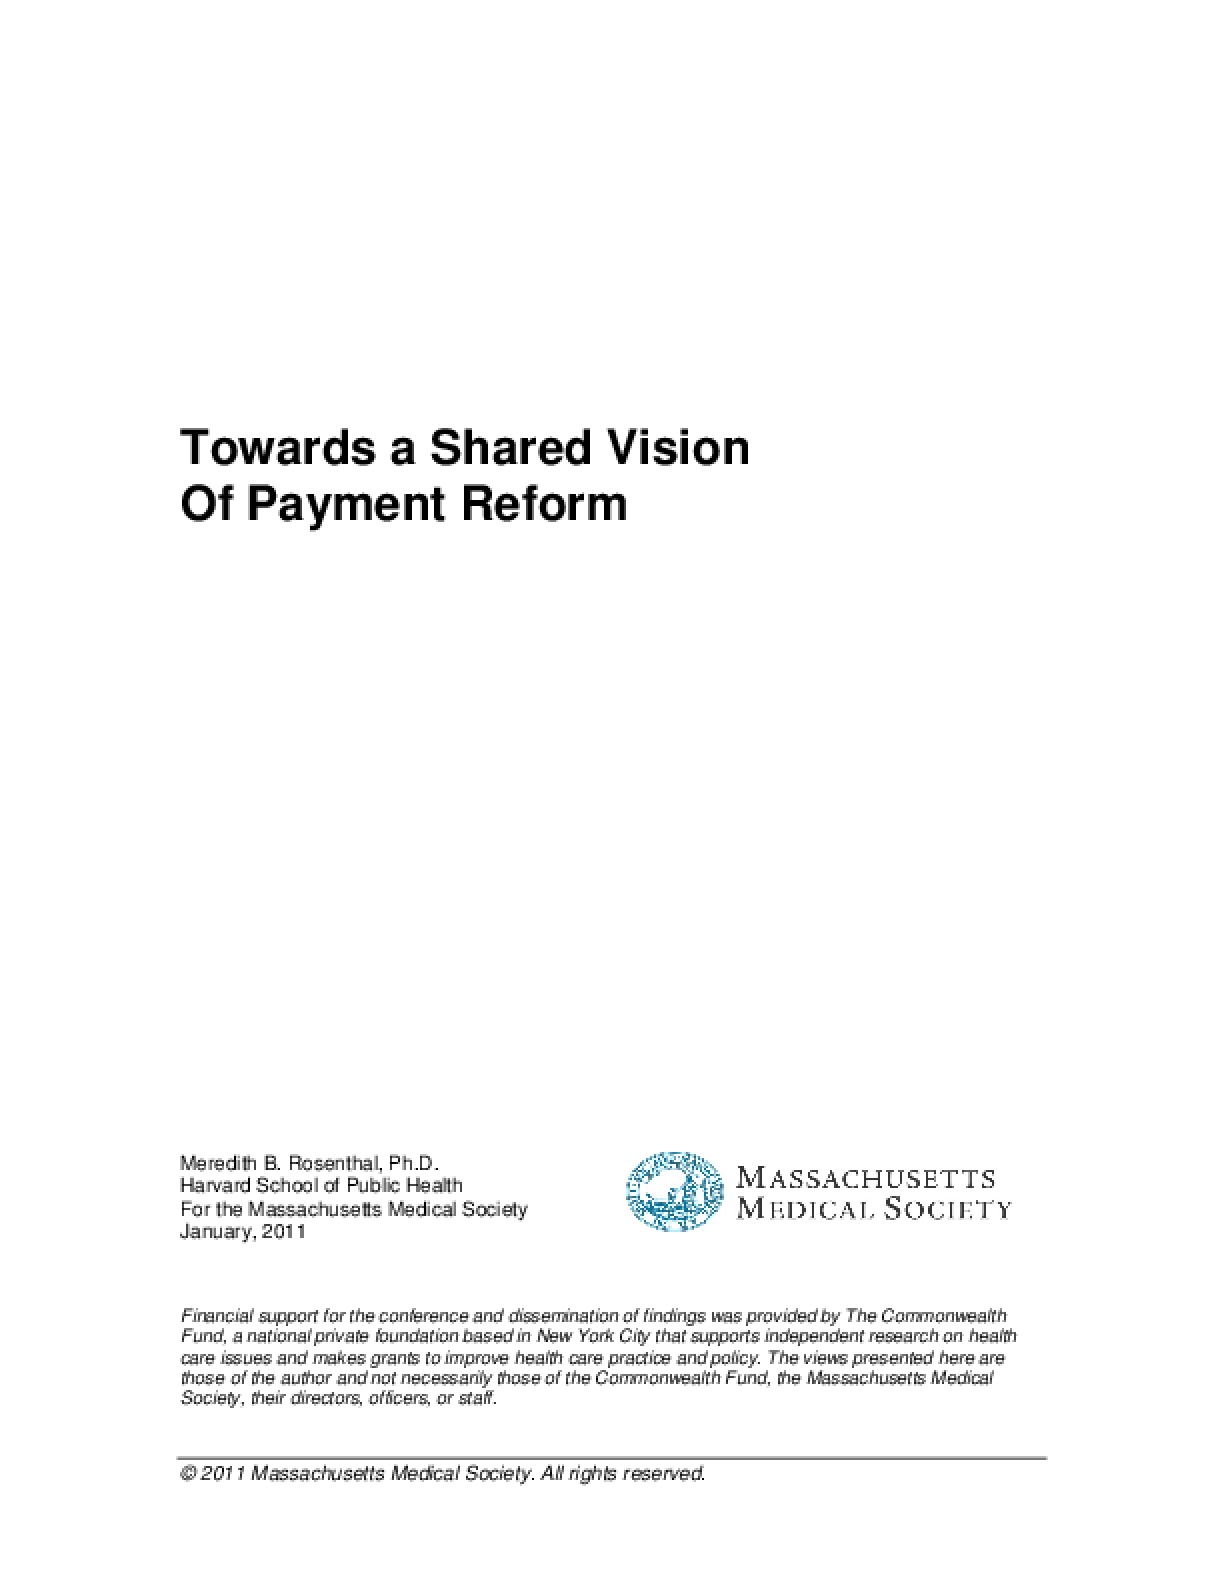 Towards a Shared Vision of Payment Reform